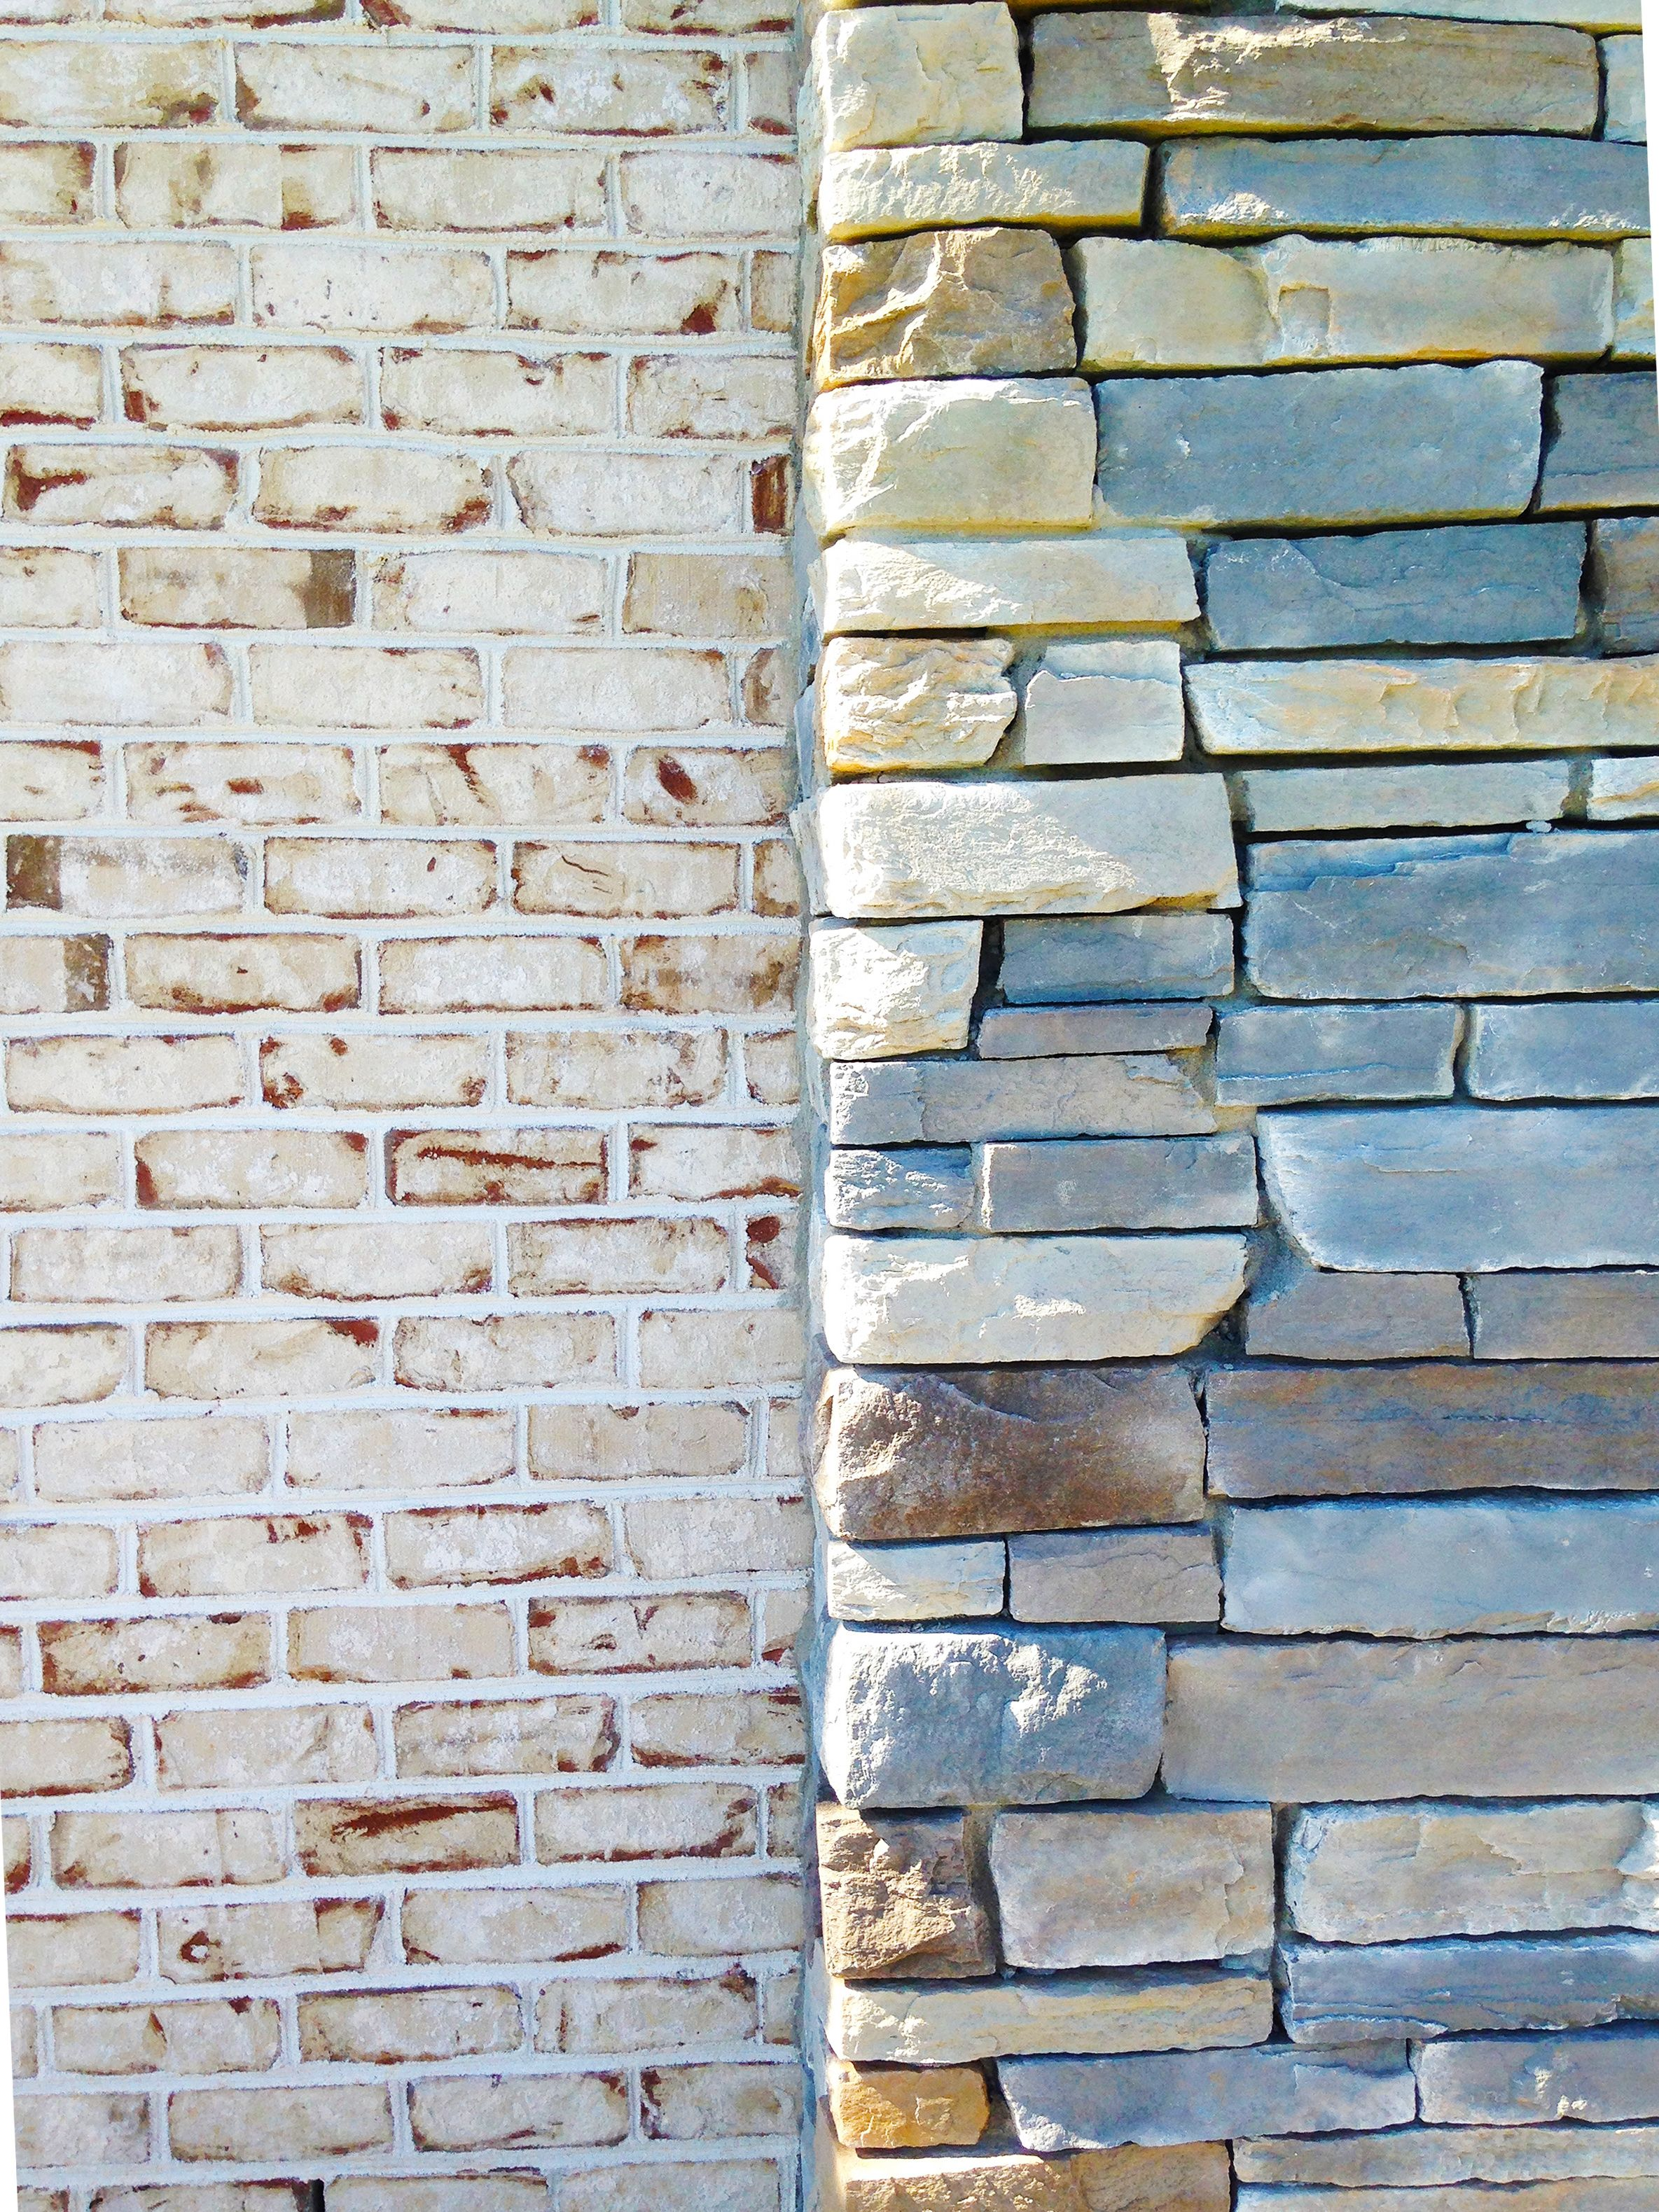 Pine Hall Brick S Chesapeake Pearl With White Mortar Matched With A Multi Hued Stone Brick Farmhouse White Brick Brick Exterior House